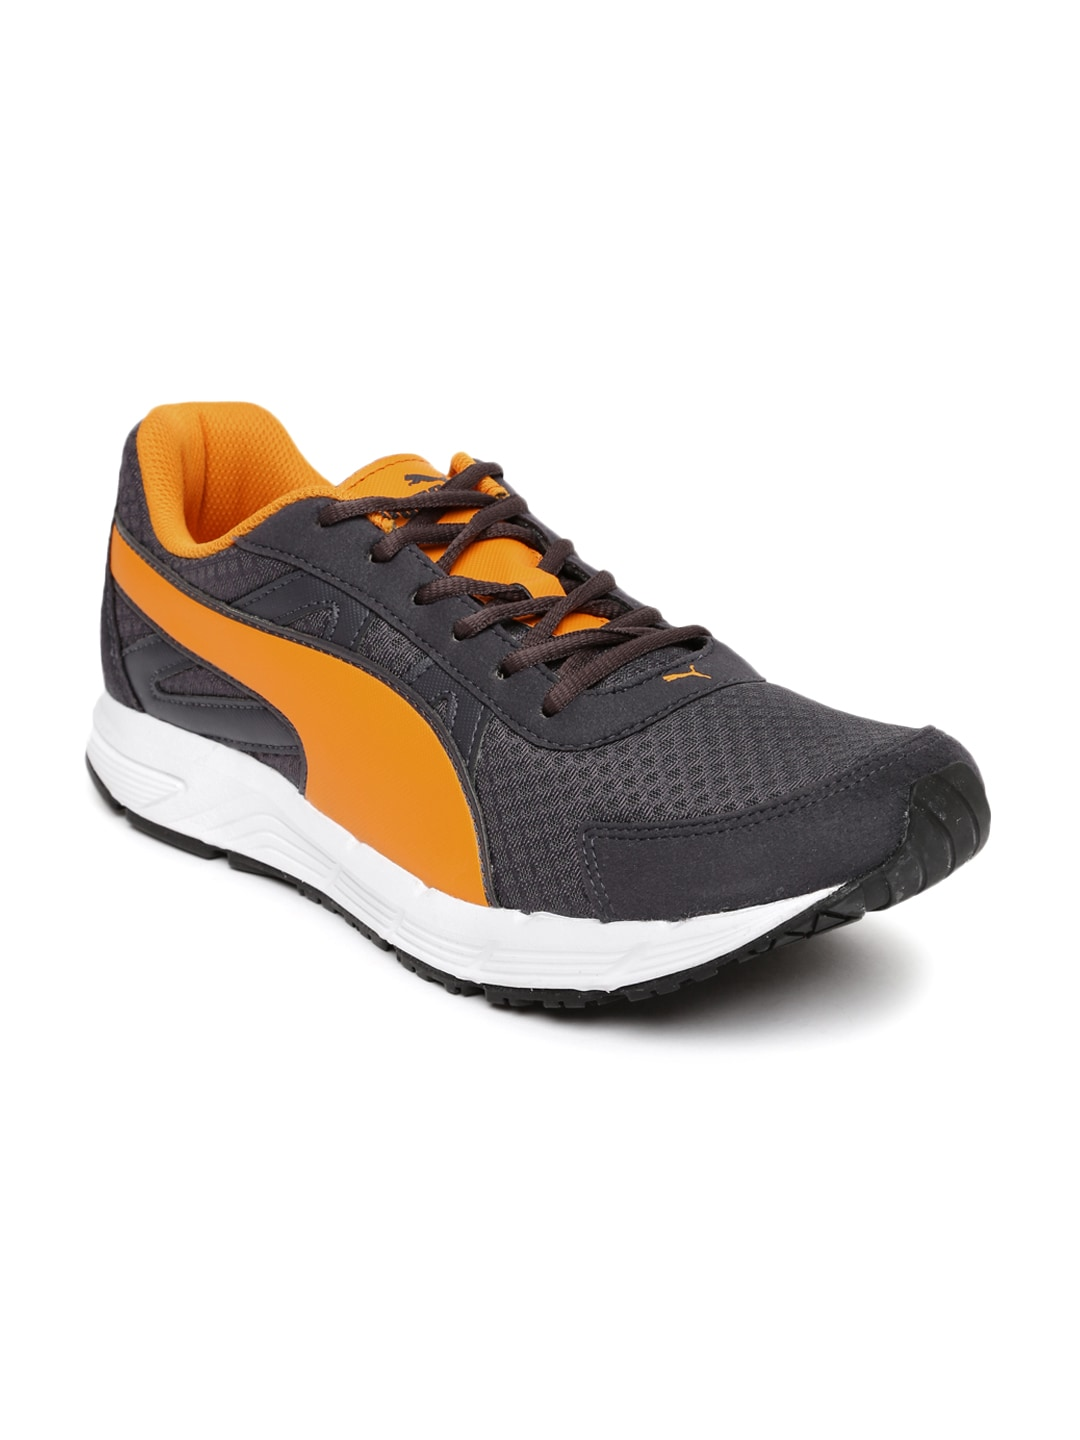 121617e209cf Puma Shoes - Buy Puma Shoes for Men   Women Online in India